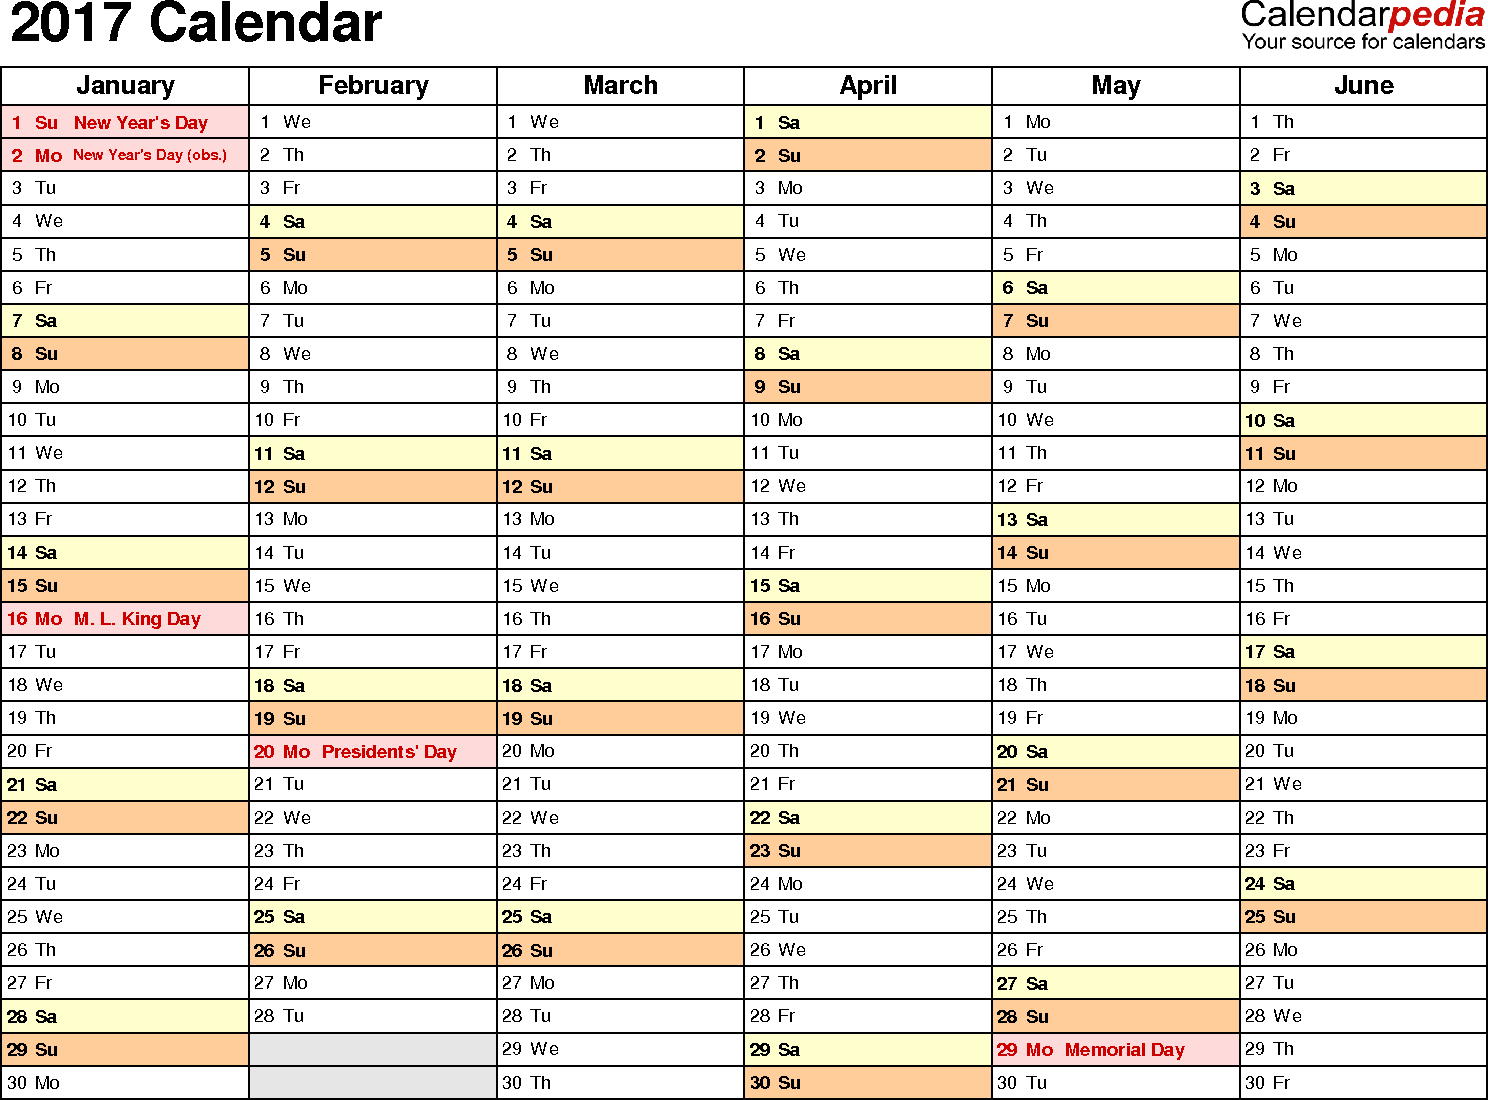 Ediblewildsus  Winning  Calendar  Download  Free Printable Excel Templates Xls With Fascinating Template   Calendar For Excel Months Horizontally  Pages Landscape Orientation With Captivating Excel Vba Protect Sheet Also How To Add Drop Down List In Excel  In Addition Subtract Columns In Excel And Excel Freezes As Well As Excel Toggle Button Additionally Recording Macros In Excel From Calendarpediacom With Ediblewildsus  Fascinating  Calendar  Download  Free Printable Excel Templates Xls With Captivating Template   Calendar For Excel Months Horizontally  Pages Landscape Orientation And Winning Excel Vba Protect Sheet Also How To Add Drop Down List In Excel  In Addition Subtract Columns In Excel From Calendarpediacom